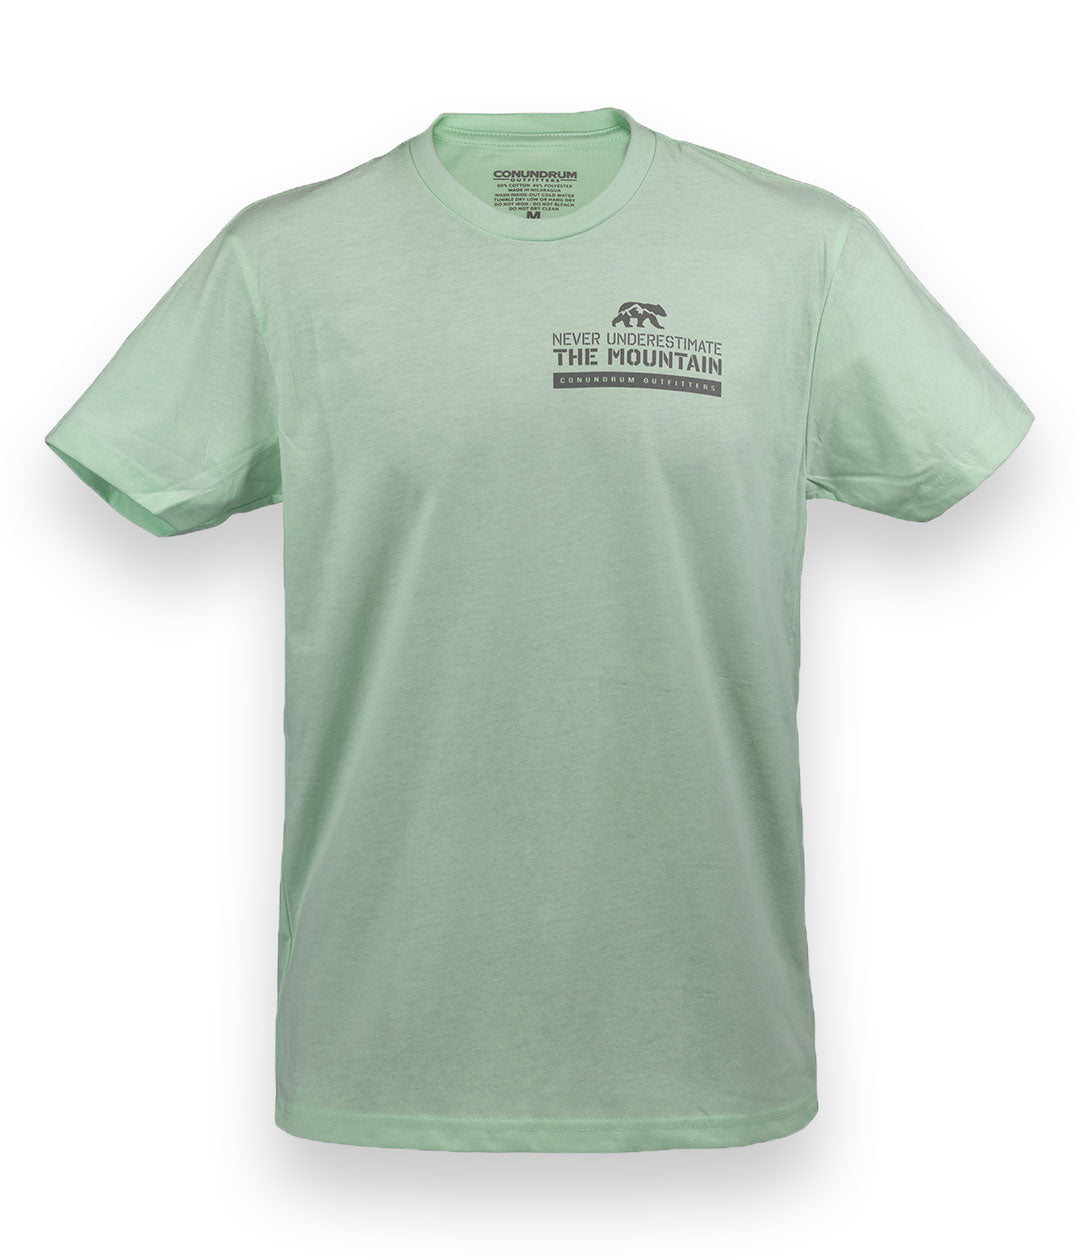 Never Underestimate the Mountain Short Sleeve Mint Outdoor Tshirt Front